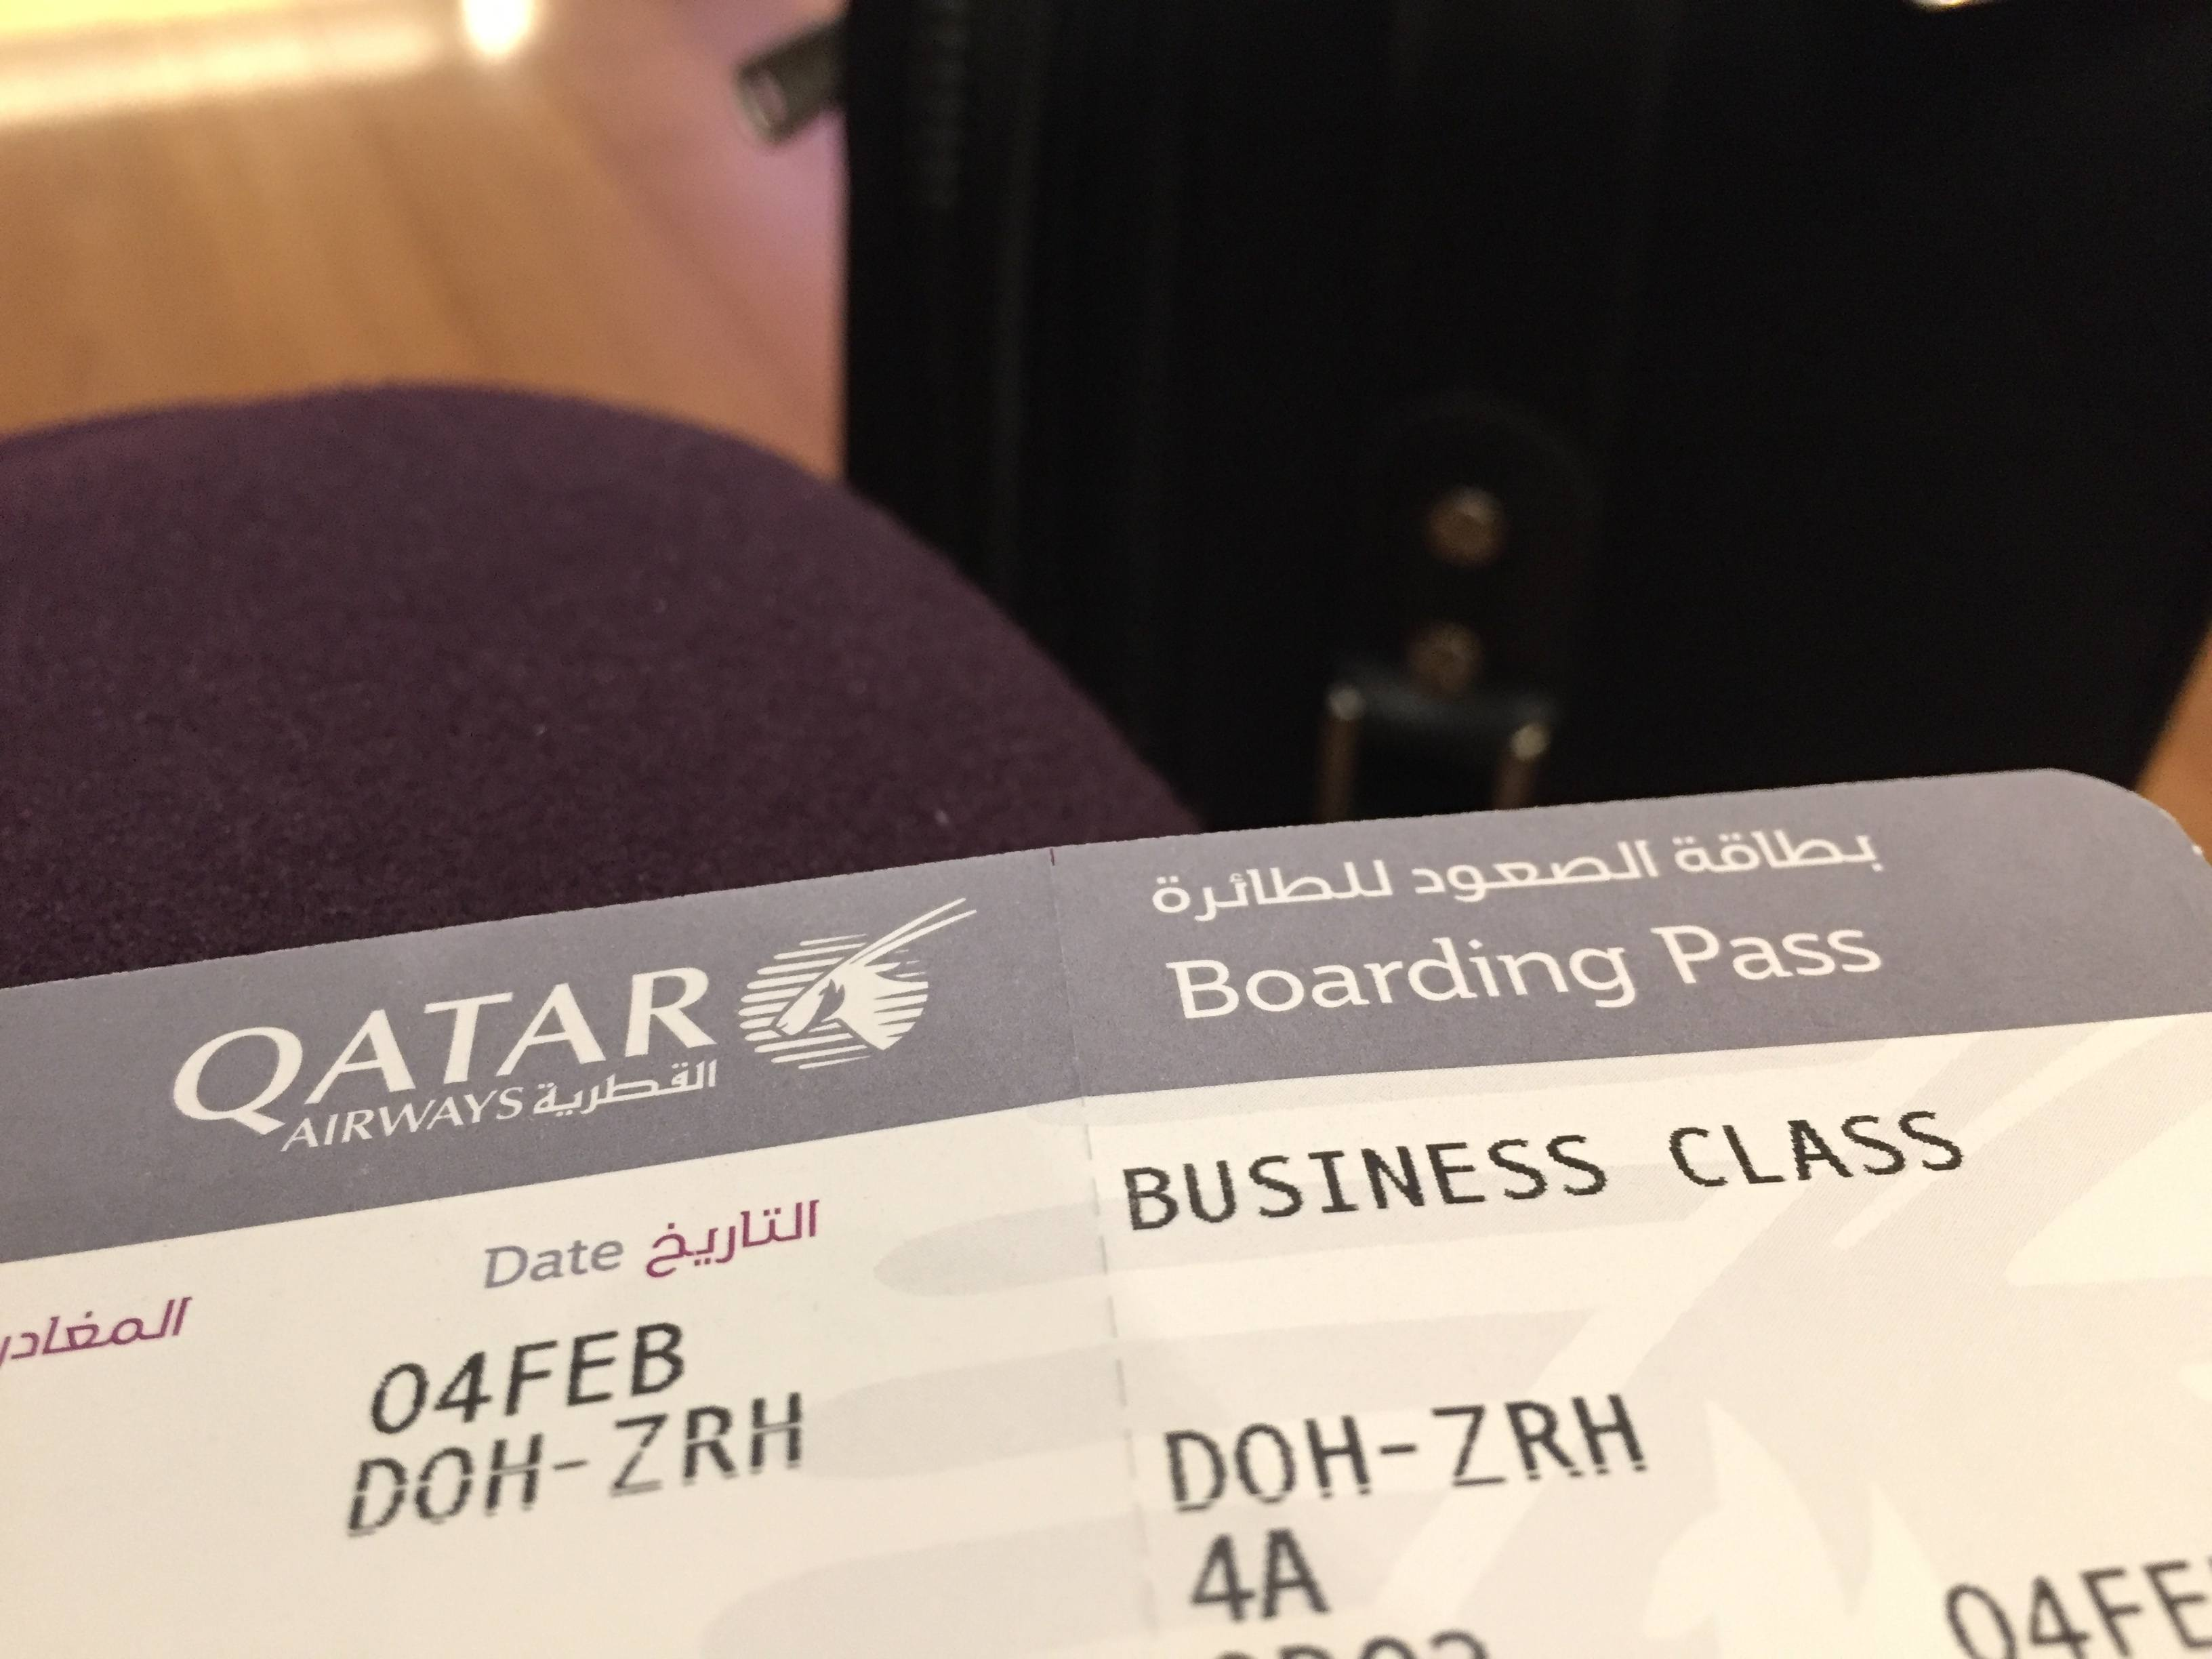 Qatar-Airwas-Business-Class-ticket